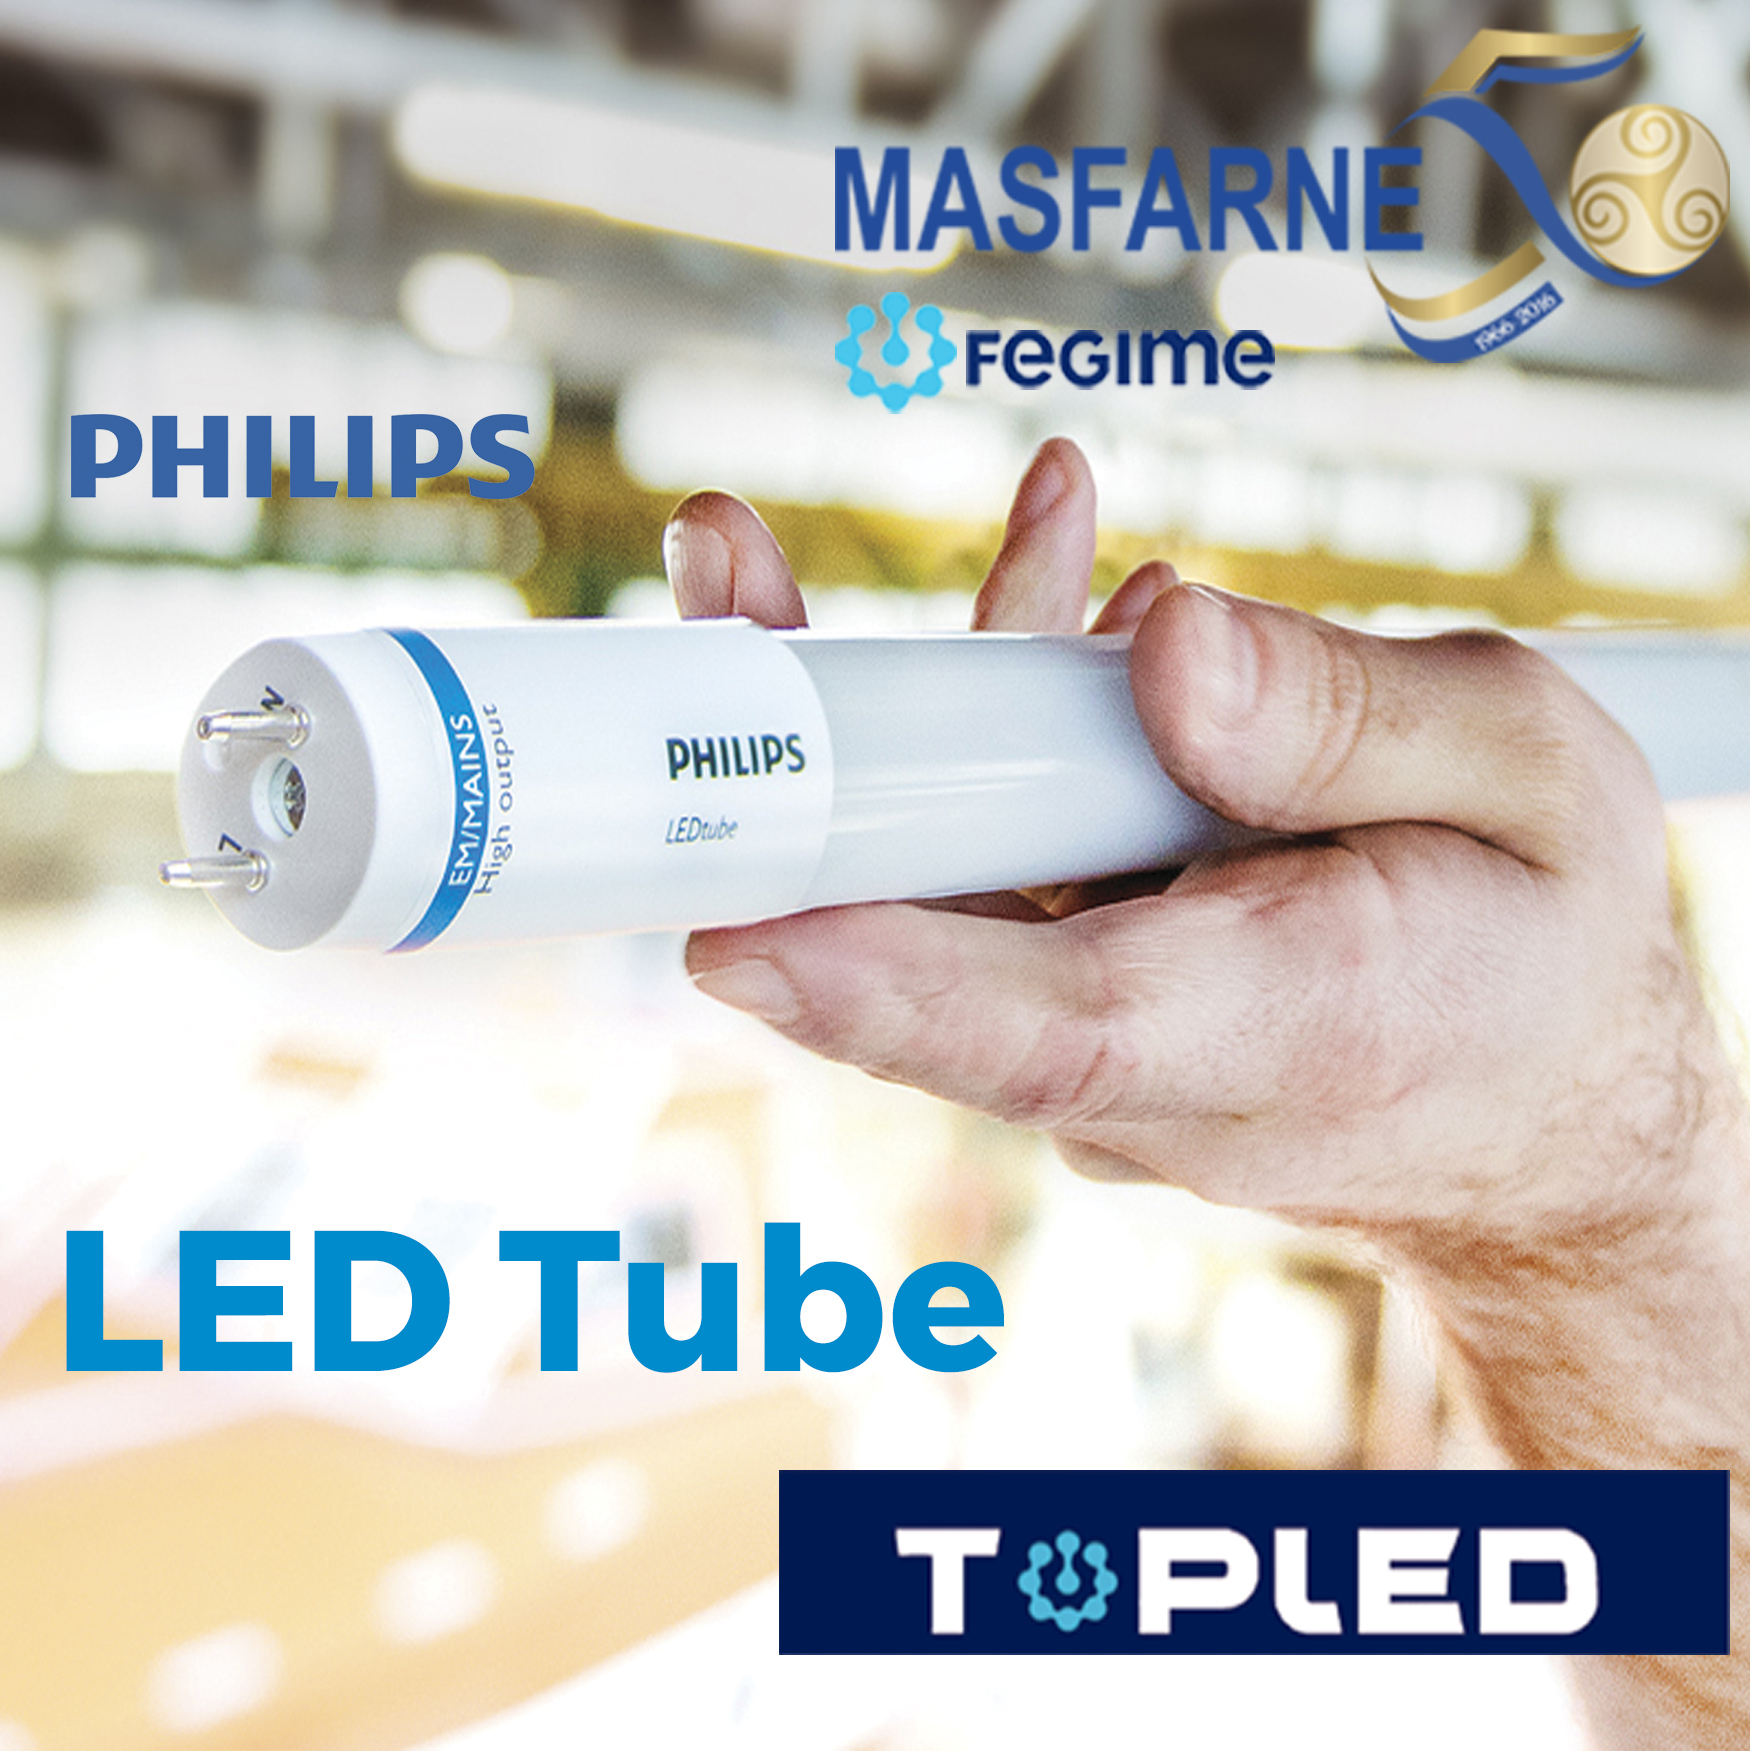 Tubos LED de Philips